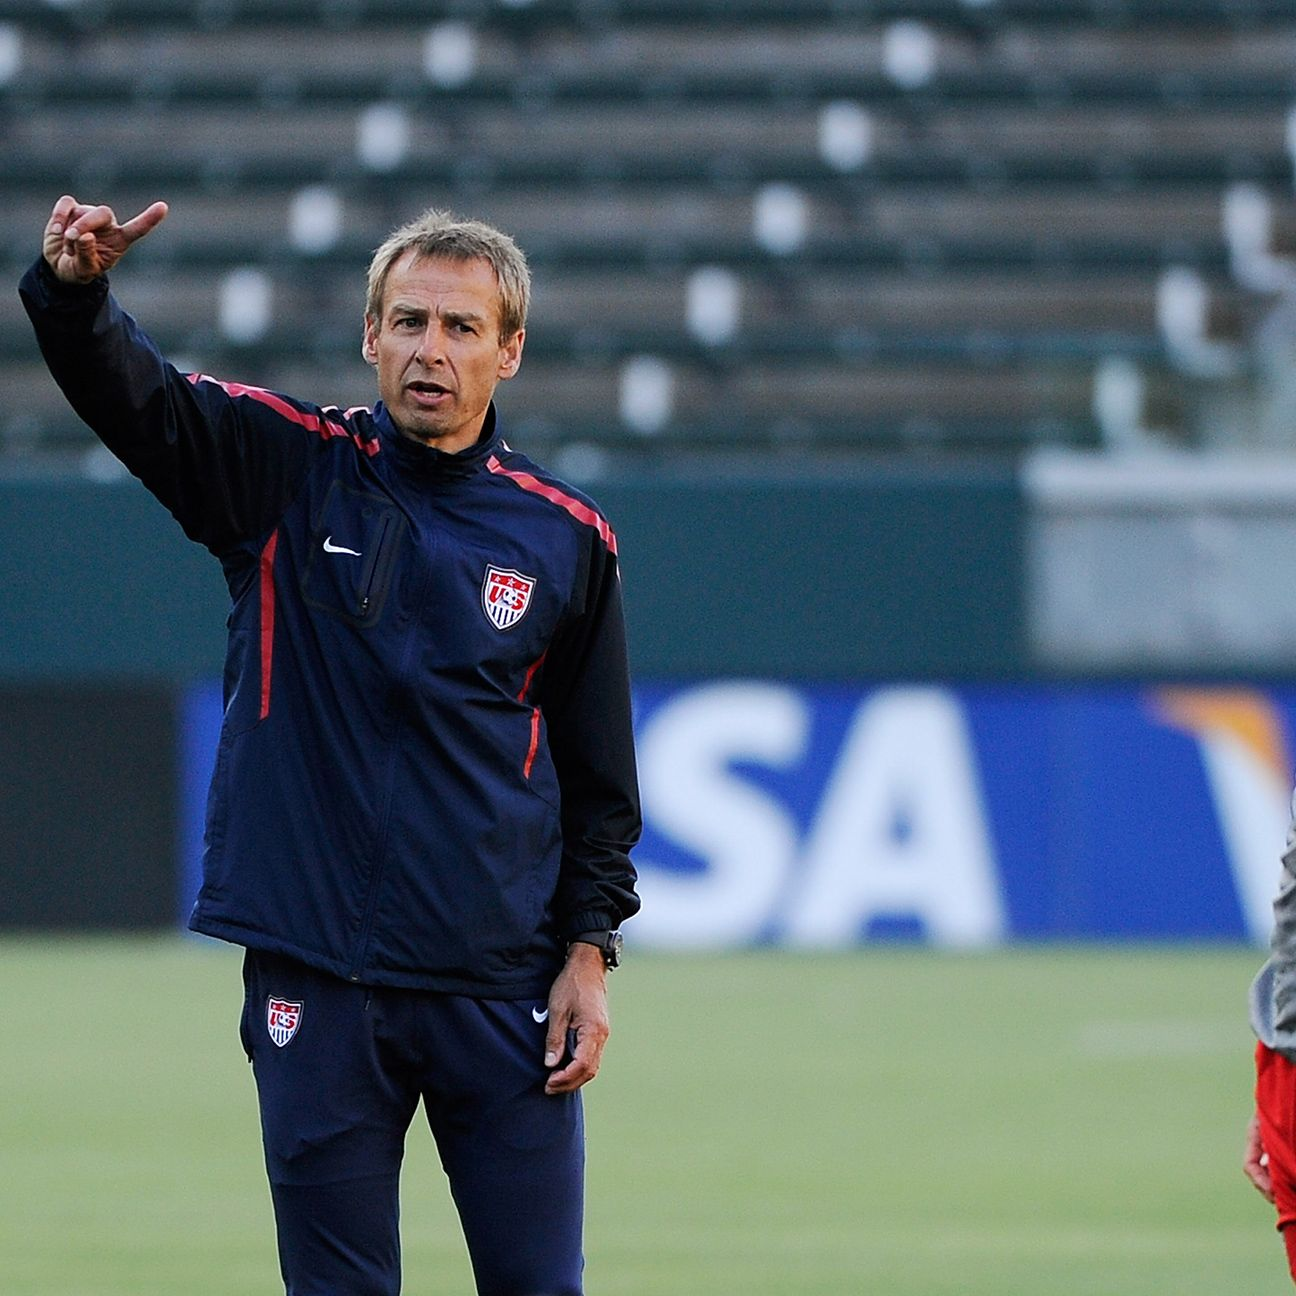 Donovan maintains that he feels no acrimony toward USMNT head coach Jurgen Klinsmann.